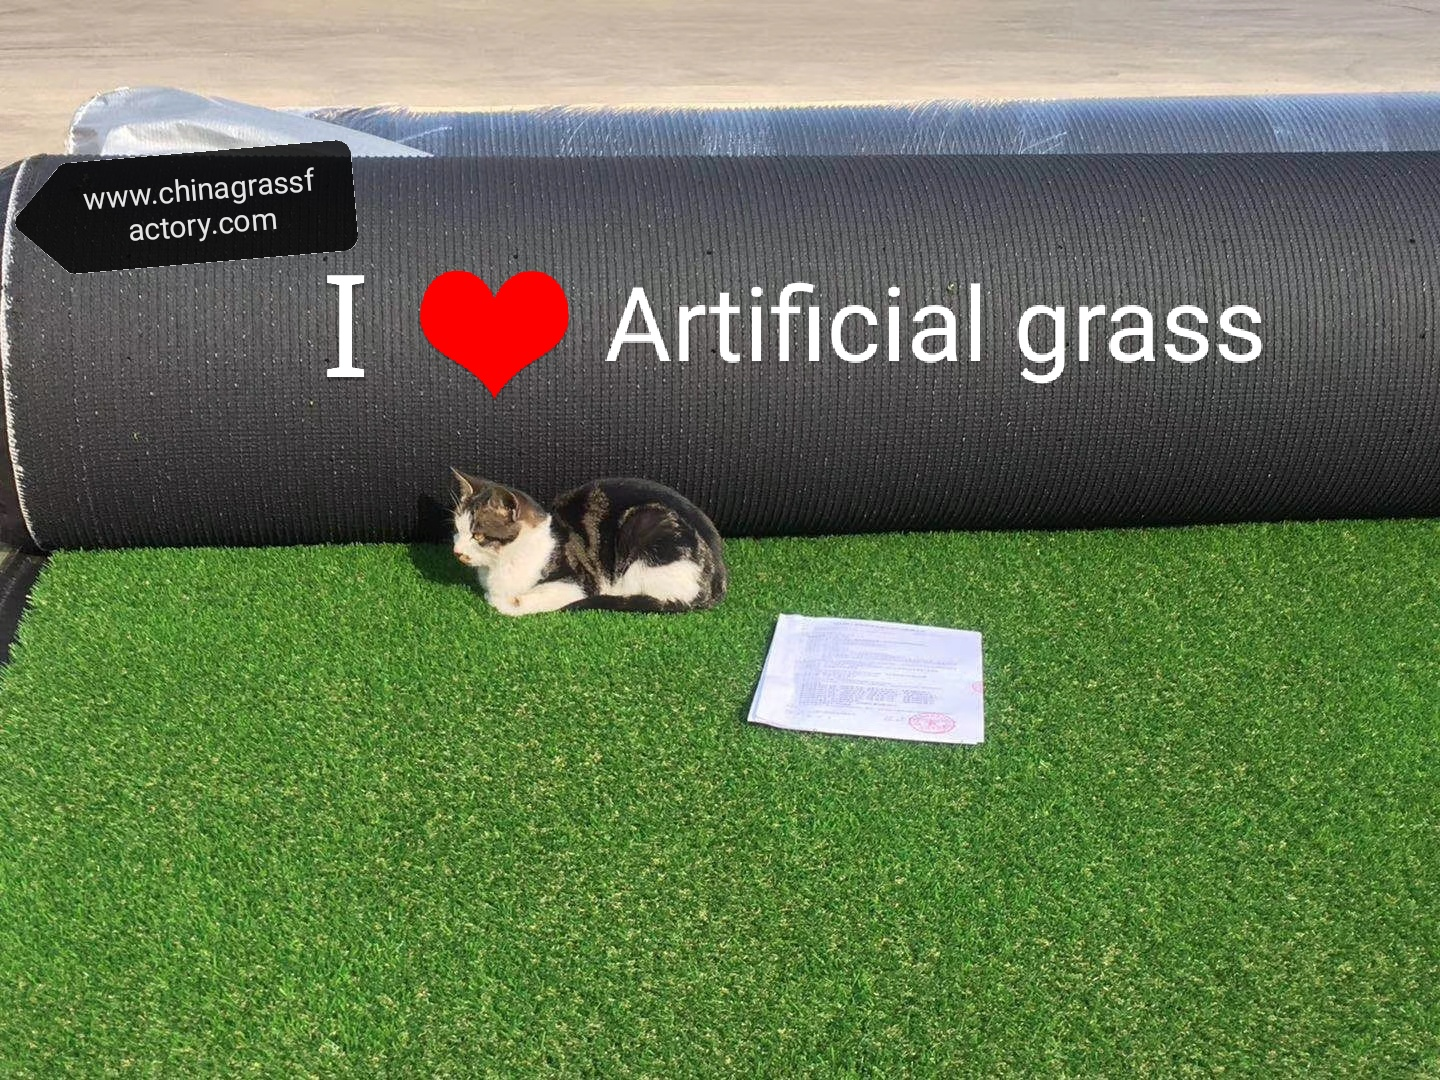 OUR #ARTIFICIALGRASS AND #SYNTHETICTURF PASSED THE NO HEAVY METAL TEST BY #SGS